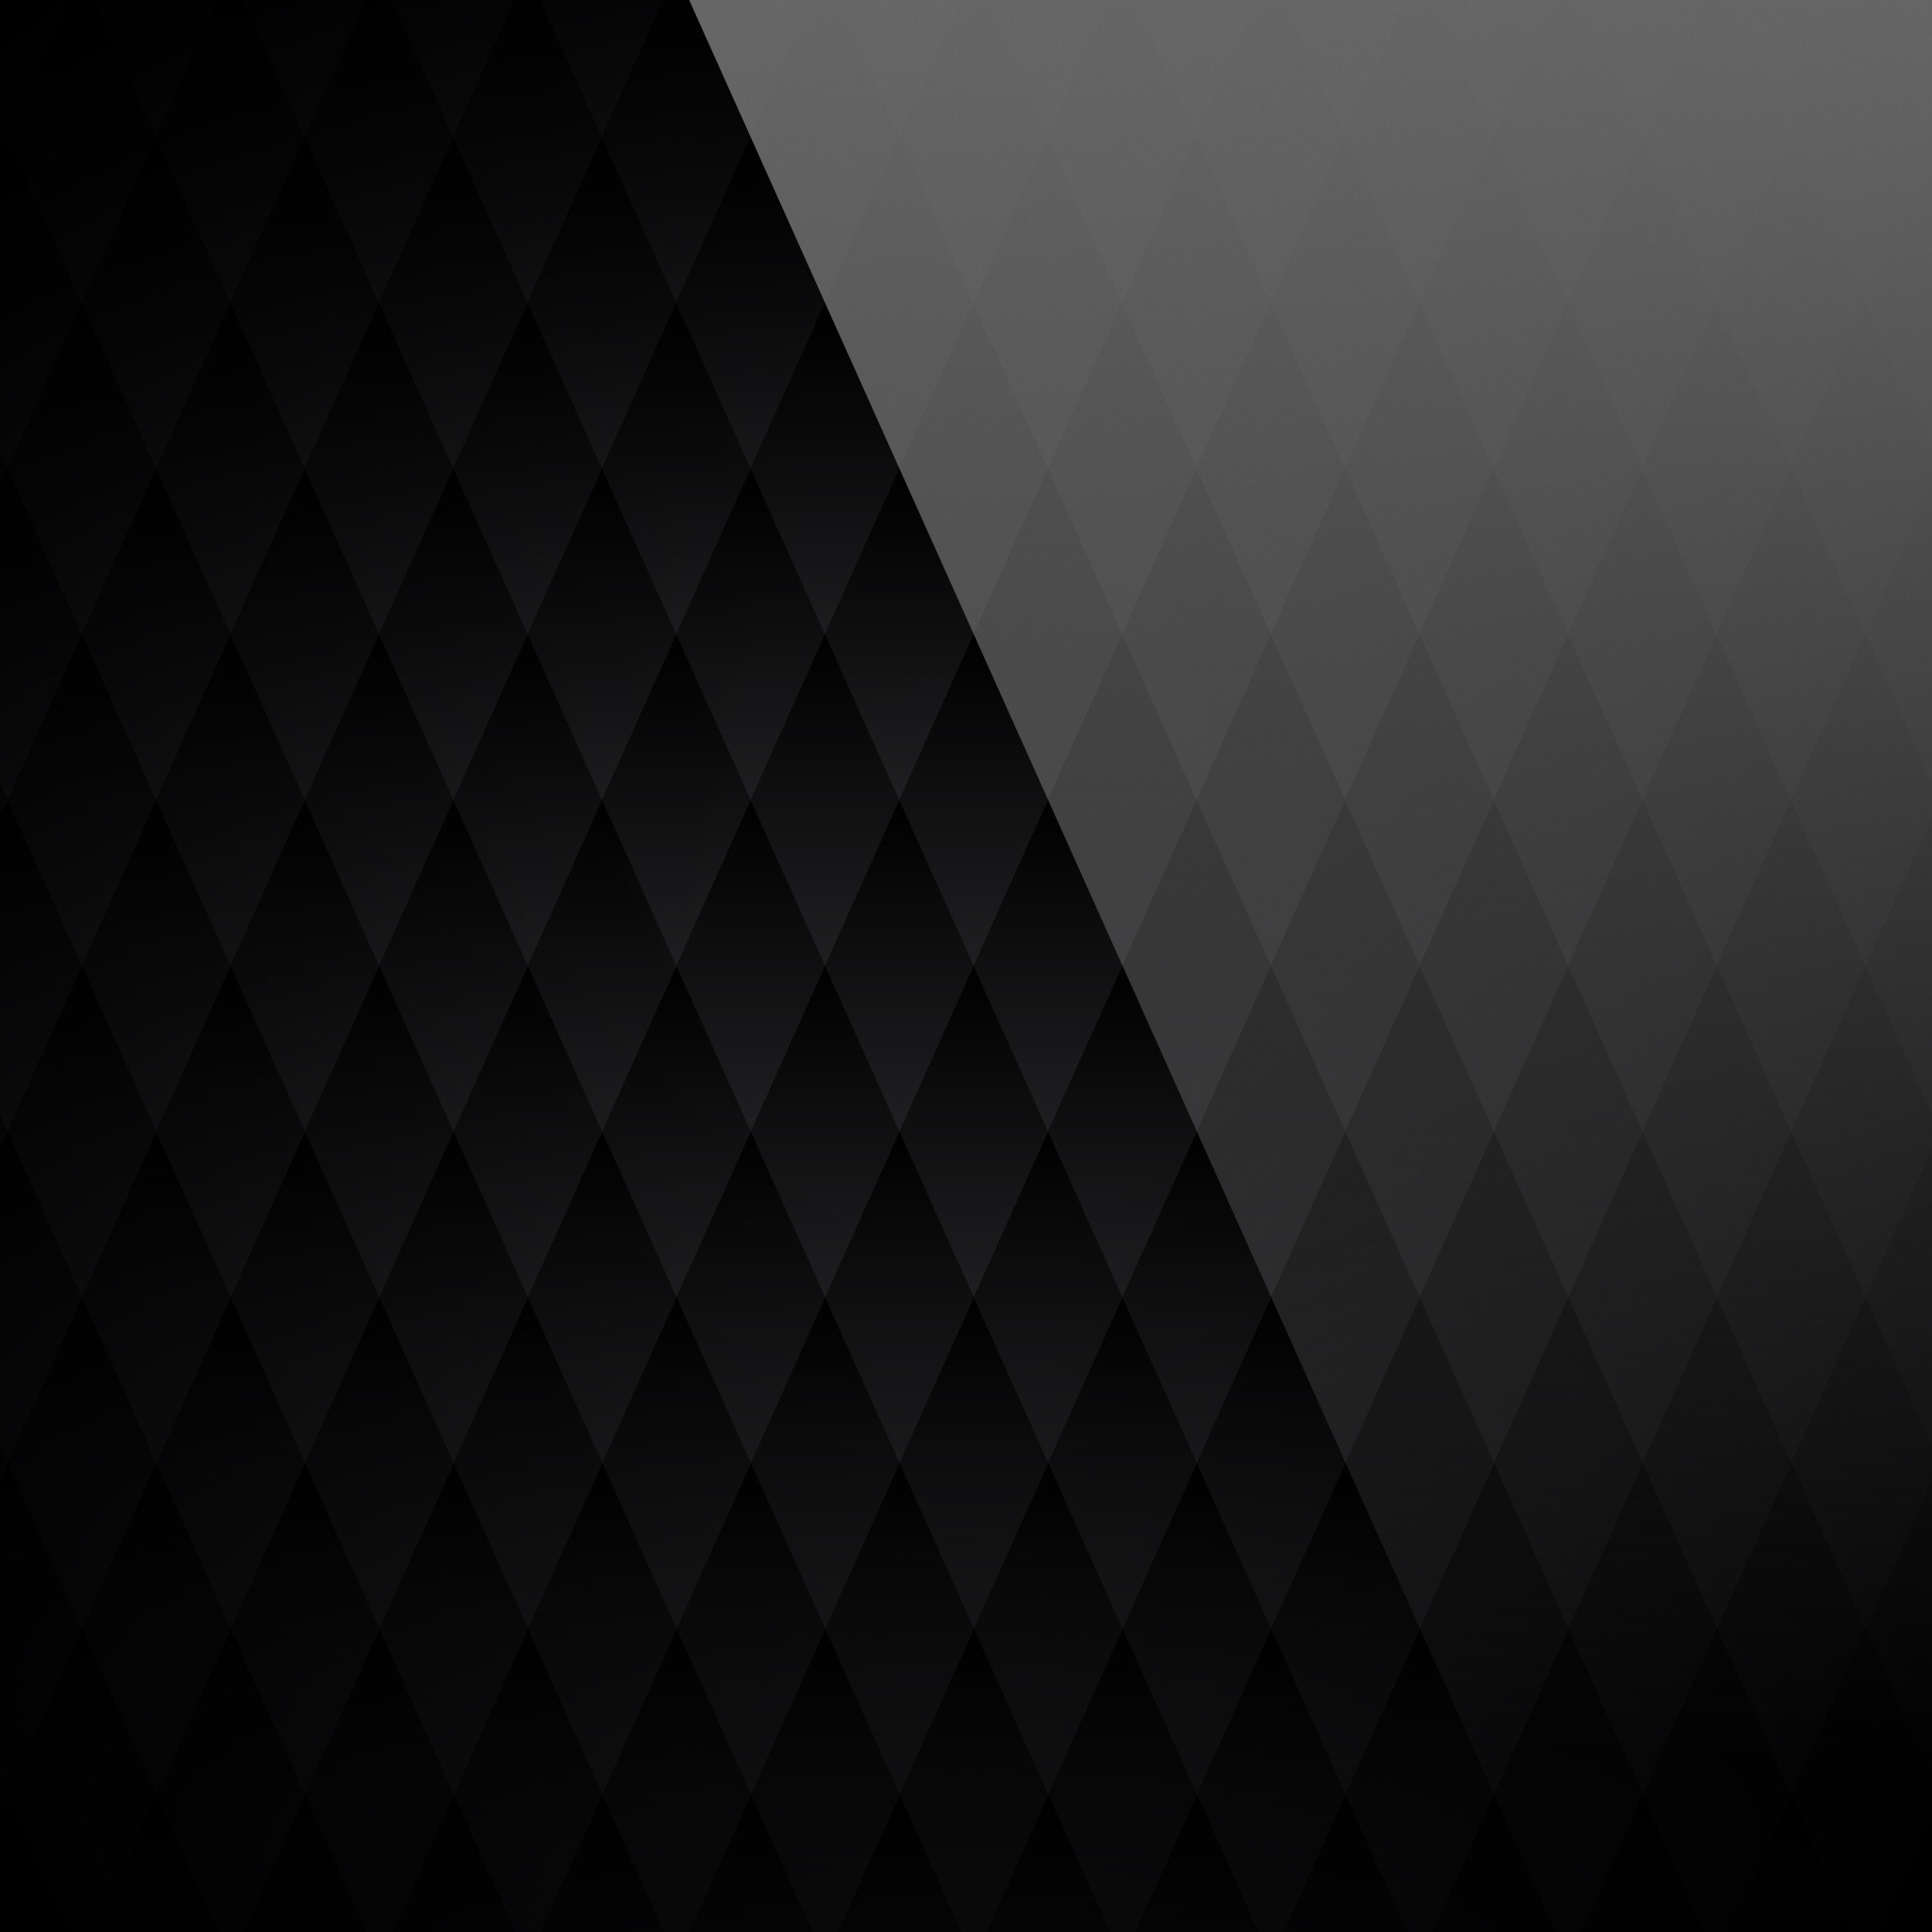 iphone 6 iphone 6 plus wallpapers